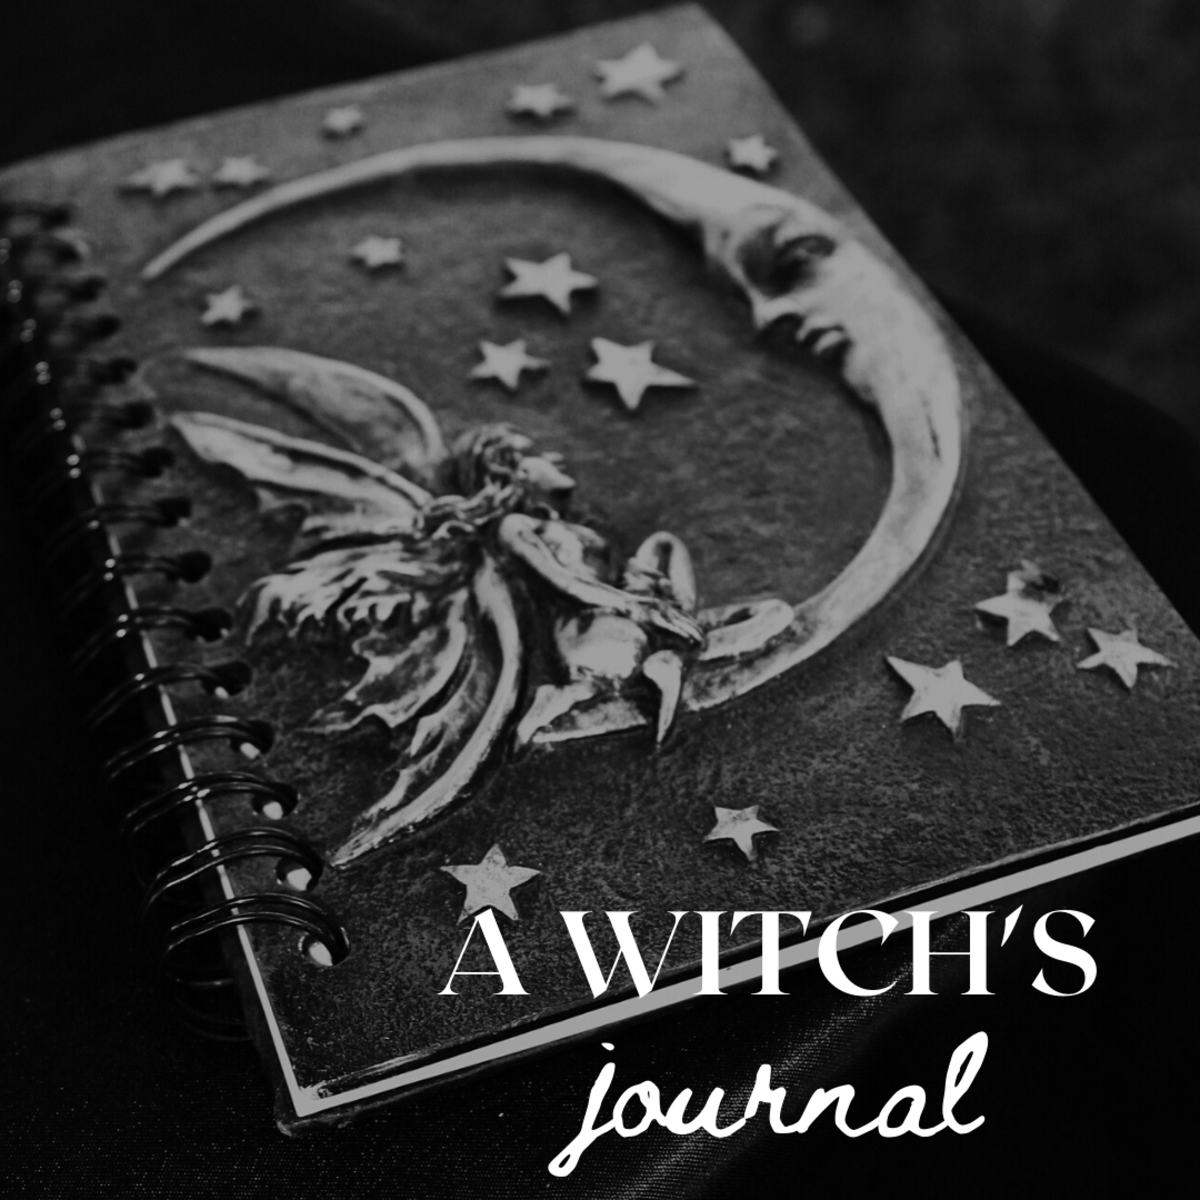 A Witch's Book of Shadows, Journal, Spell Book, or Grimoire